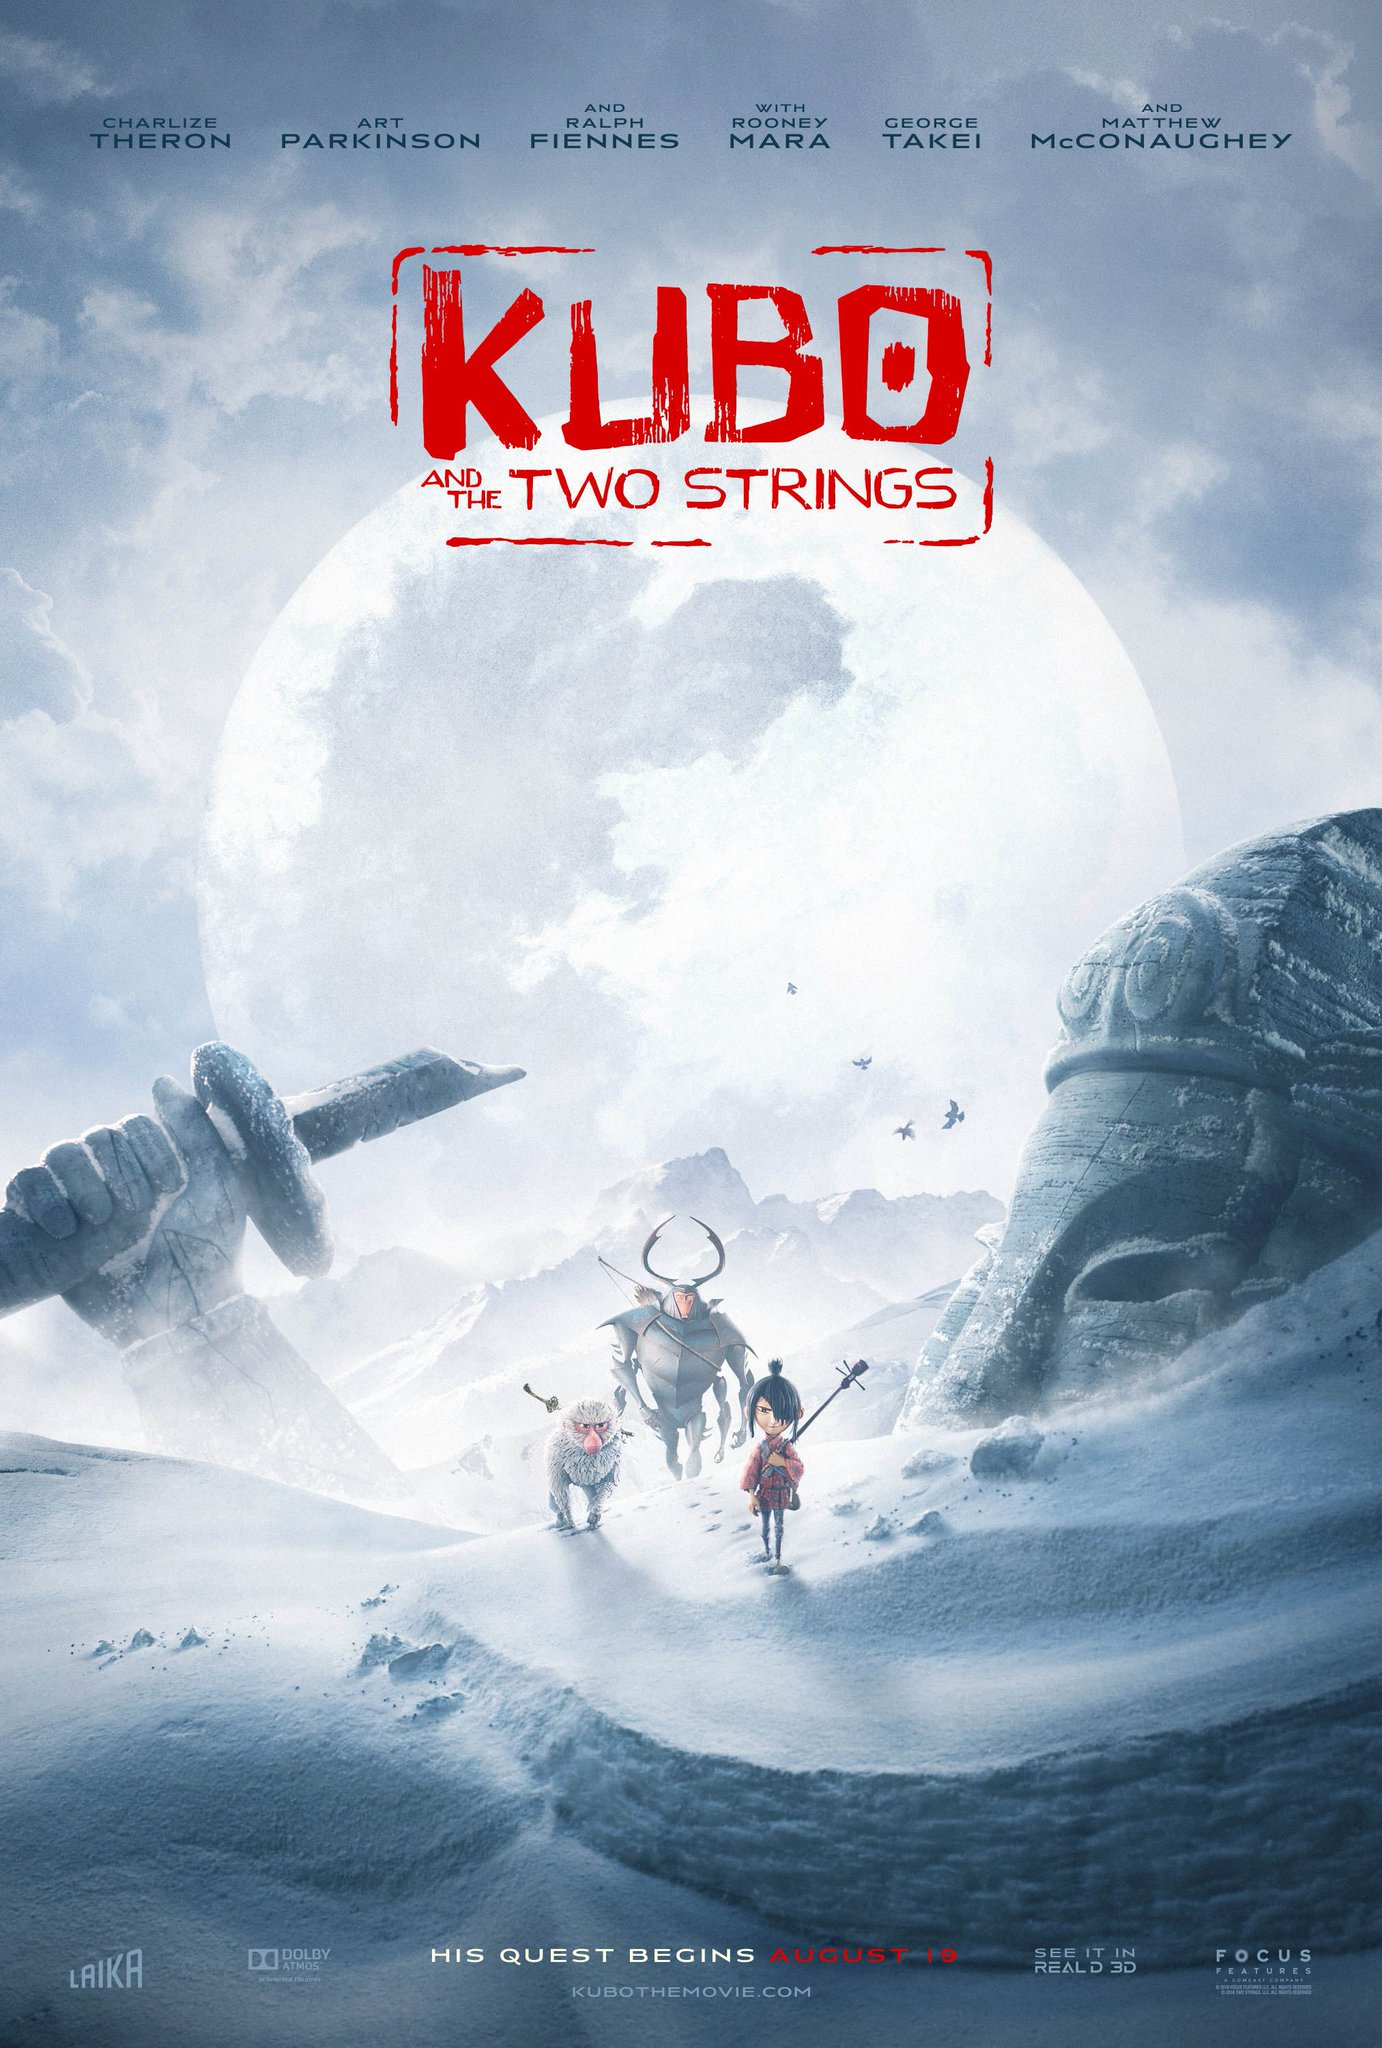 New Kubo and the Two Strings Trailer & Posters Revealed 4